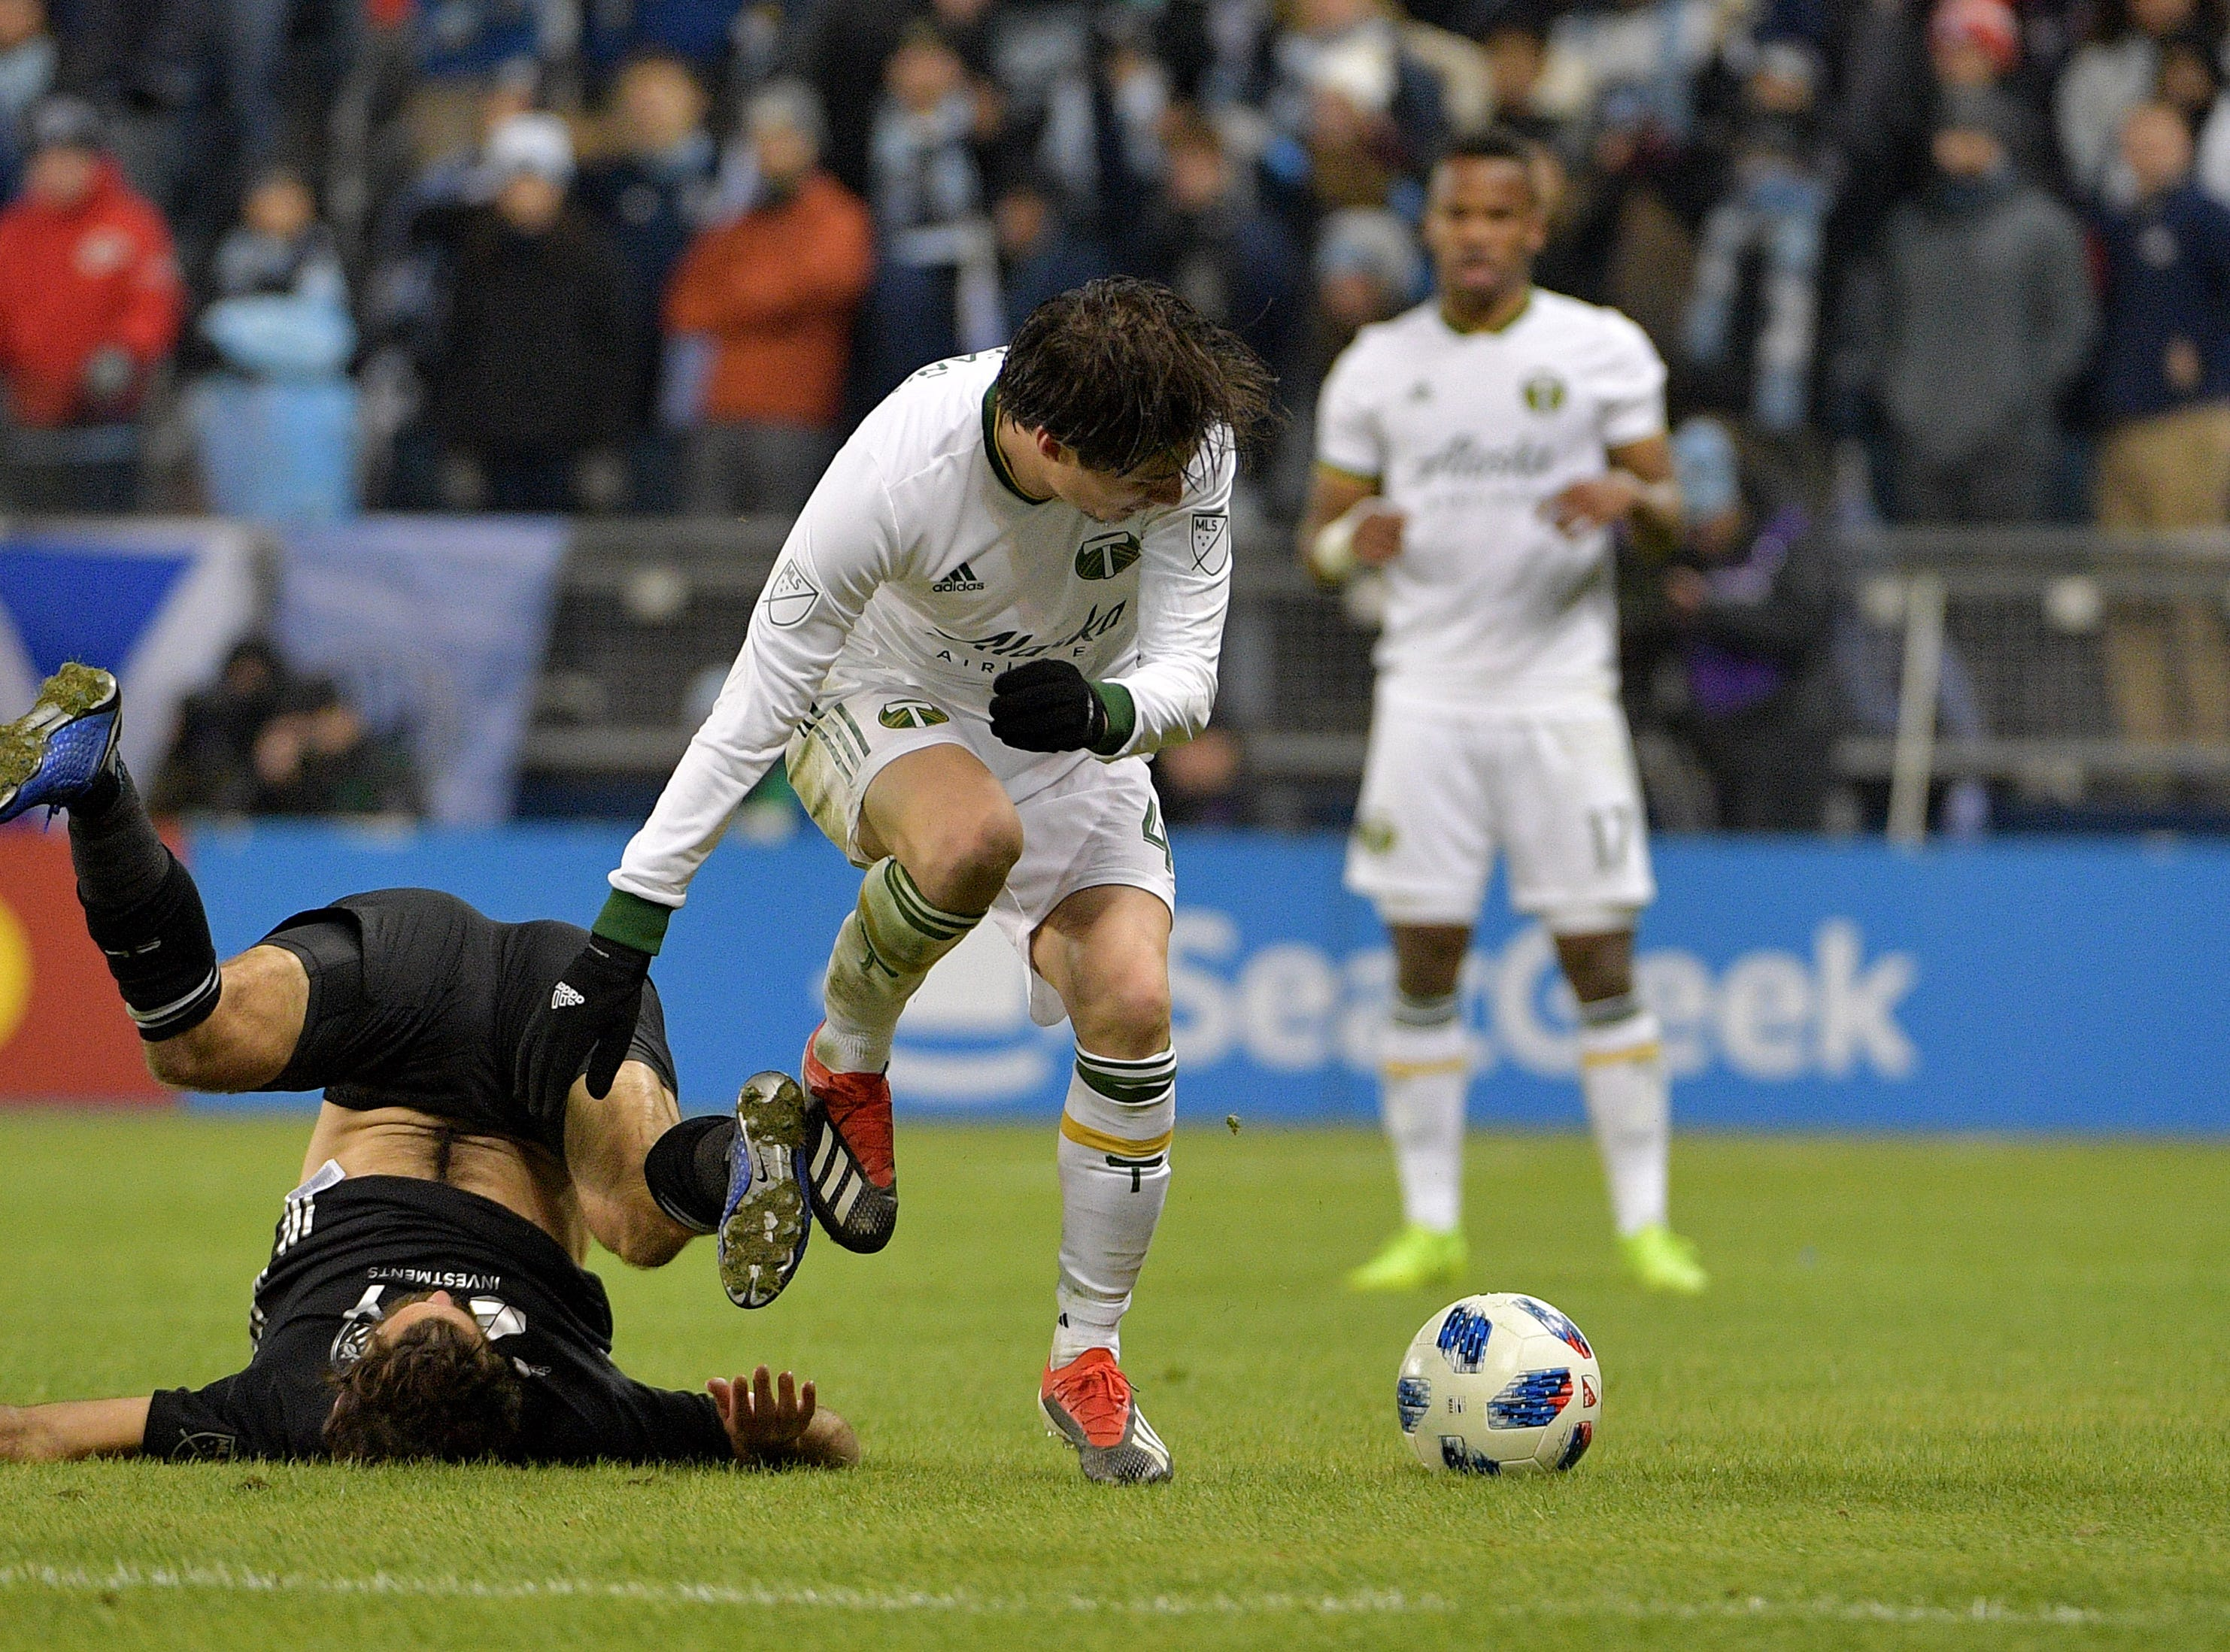 Nov 29, 2018; Kansas City, KS, USA; Sporting Kansas City midfielder Graham Zusi (8) and Portland Timbers defender Jorge Villafana (4) fight for the ball in the second leg of the MLS Western Conference Championship at Children's Mercy Park. Mandatory Credit: Denny Medley-USA TODAY Sports